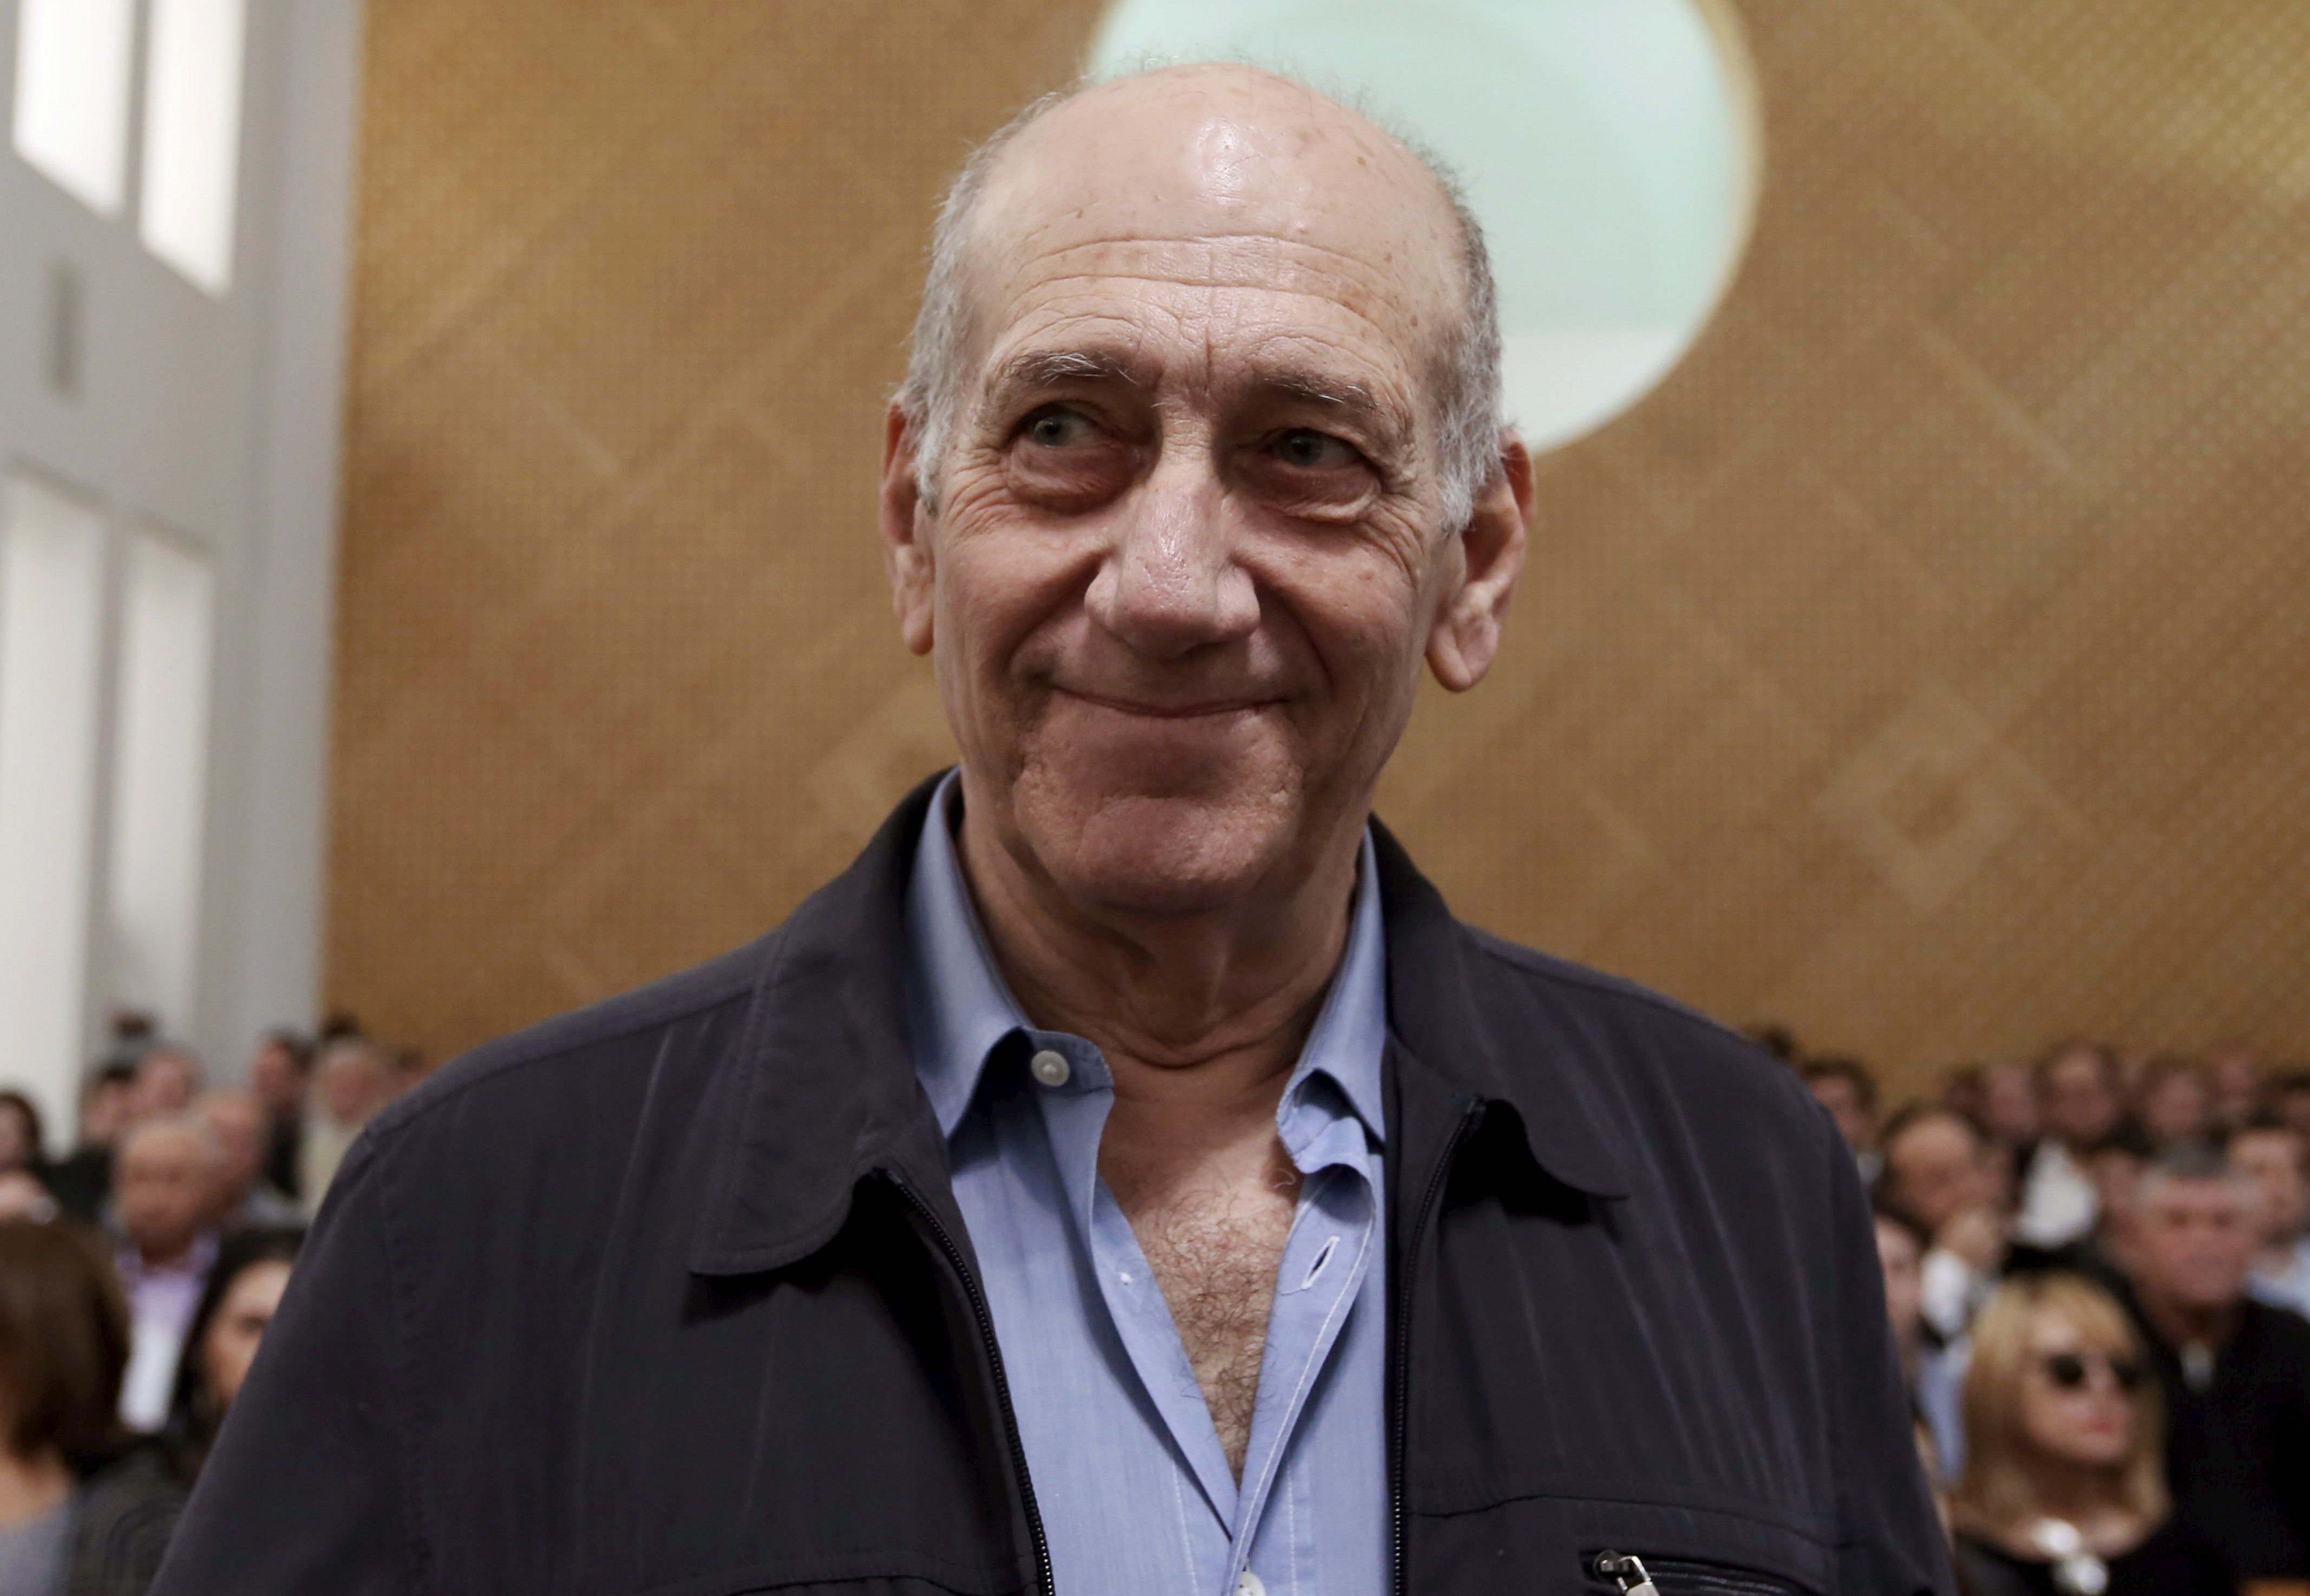 Former Israeli prime minister Ehud Olmert is seen in the courtroom as he waits for the judges at the Supreme Court in Jerusalem December 29, 2015. Israel's top court slashed Olmert's prison sentence to 18 months from six years on Tuesday after overturning the main count in his 2014 bribery conviction. Olmert, 70, will begin serving his term on Feb. 15, according to live reports from the Jerusalem courtroom, making him the first former head of government in Israel to go to prison. REUTERS/Gali Tibbon/Pool